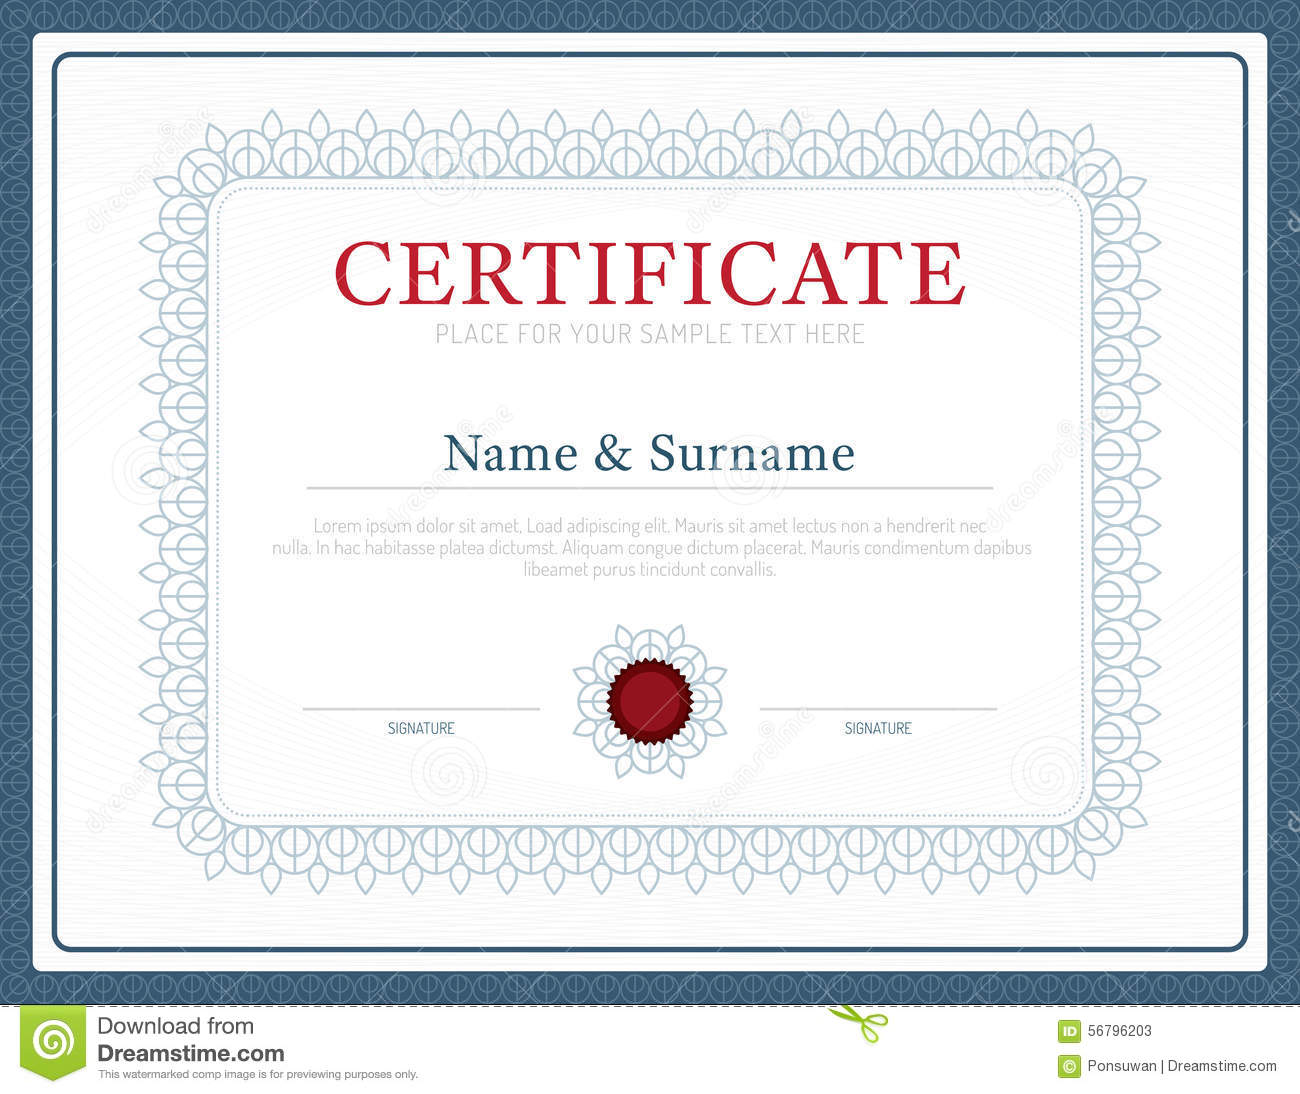 Certificate template layout background frame design vector mode certificate template layout background frame design vector mode xflitez Gallery